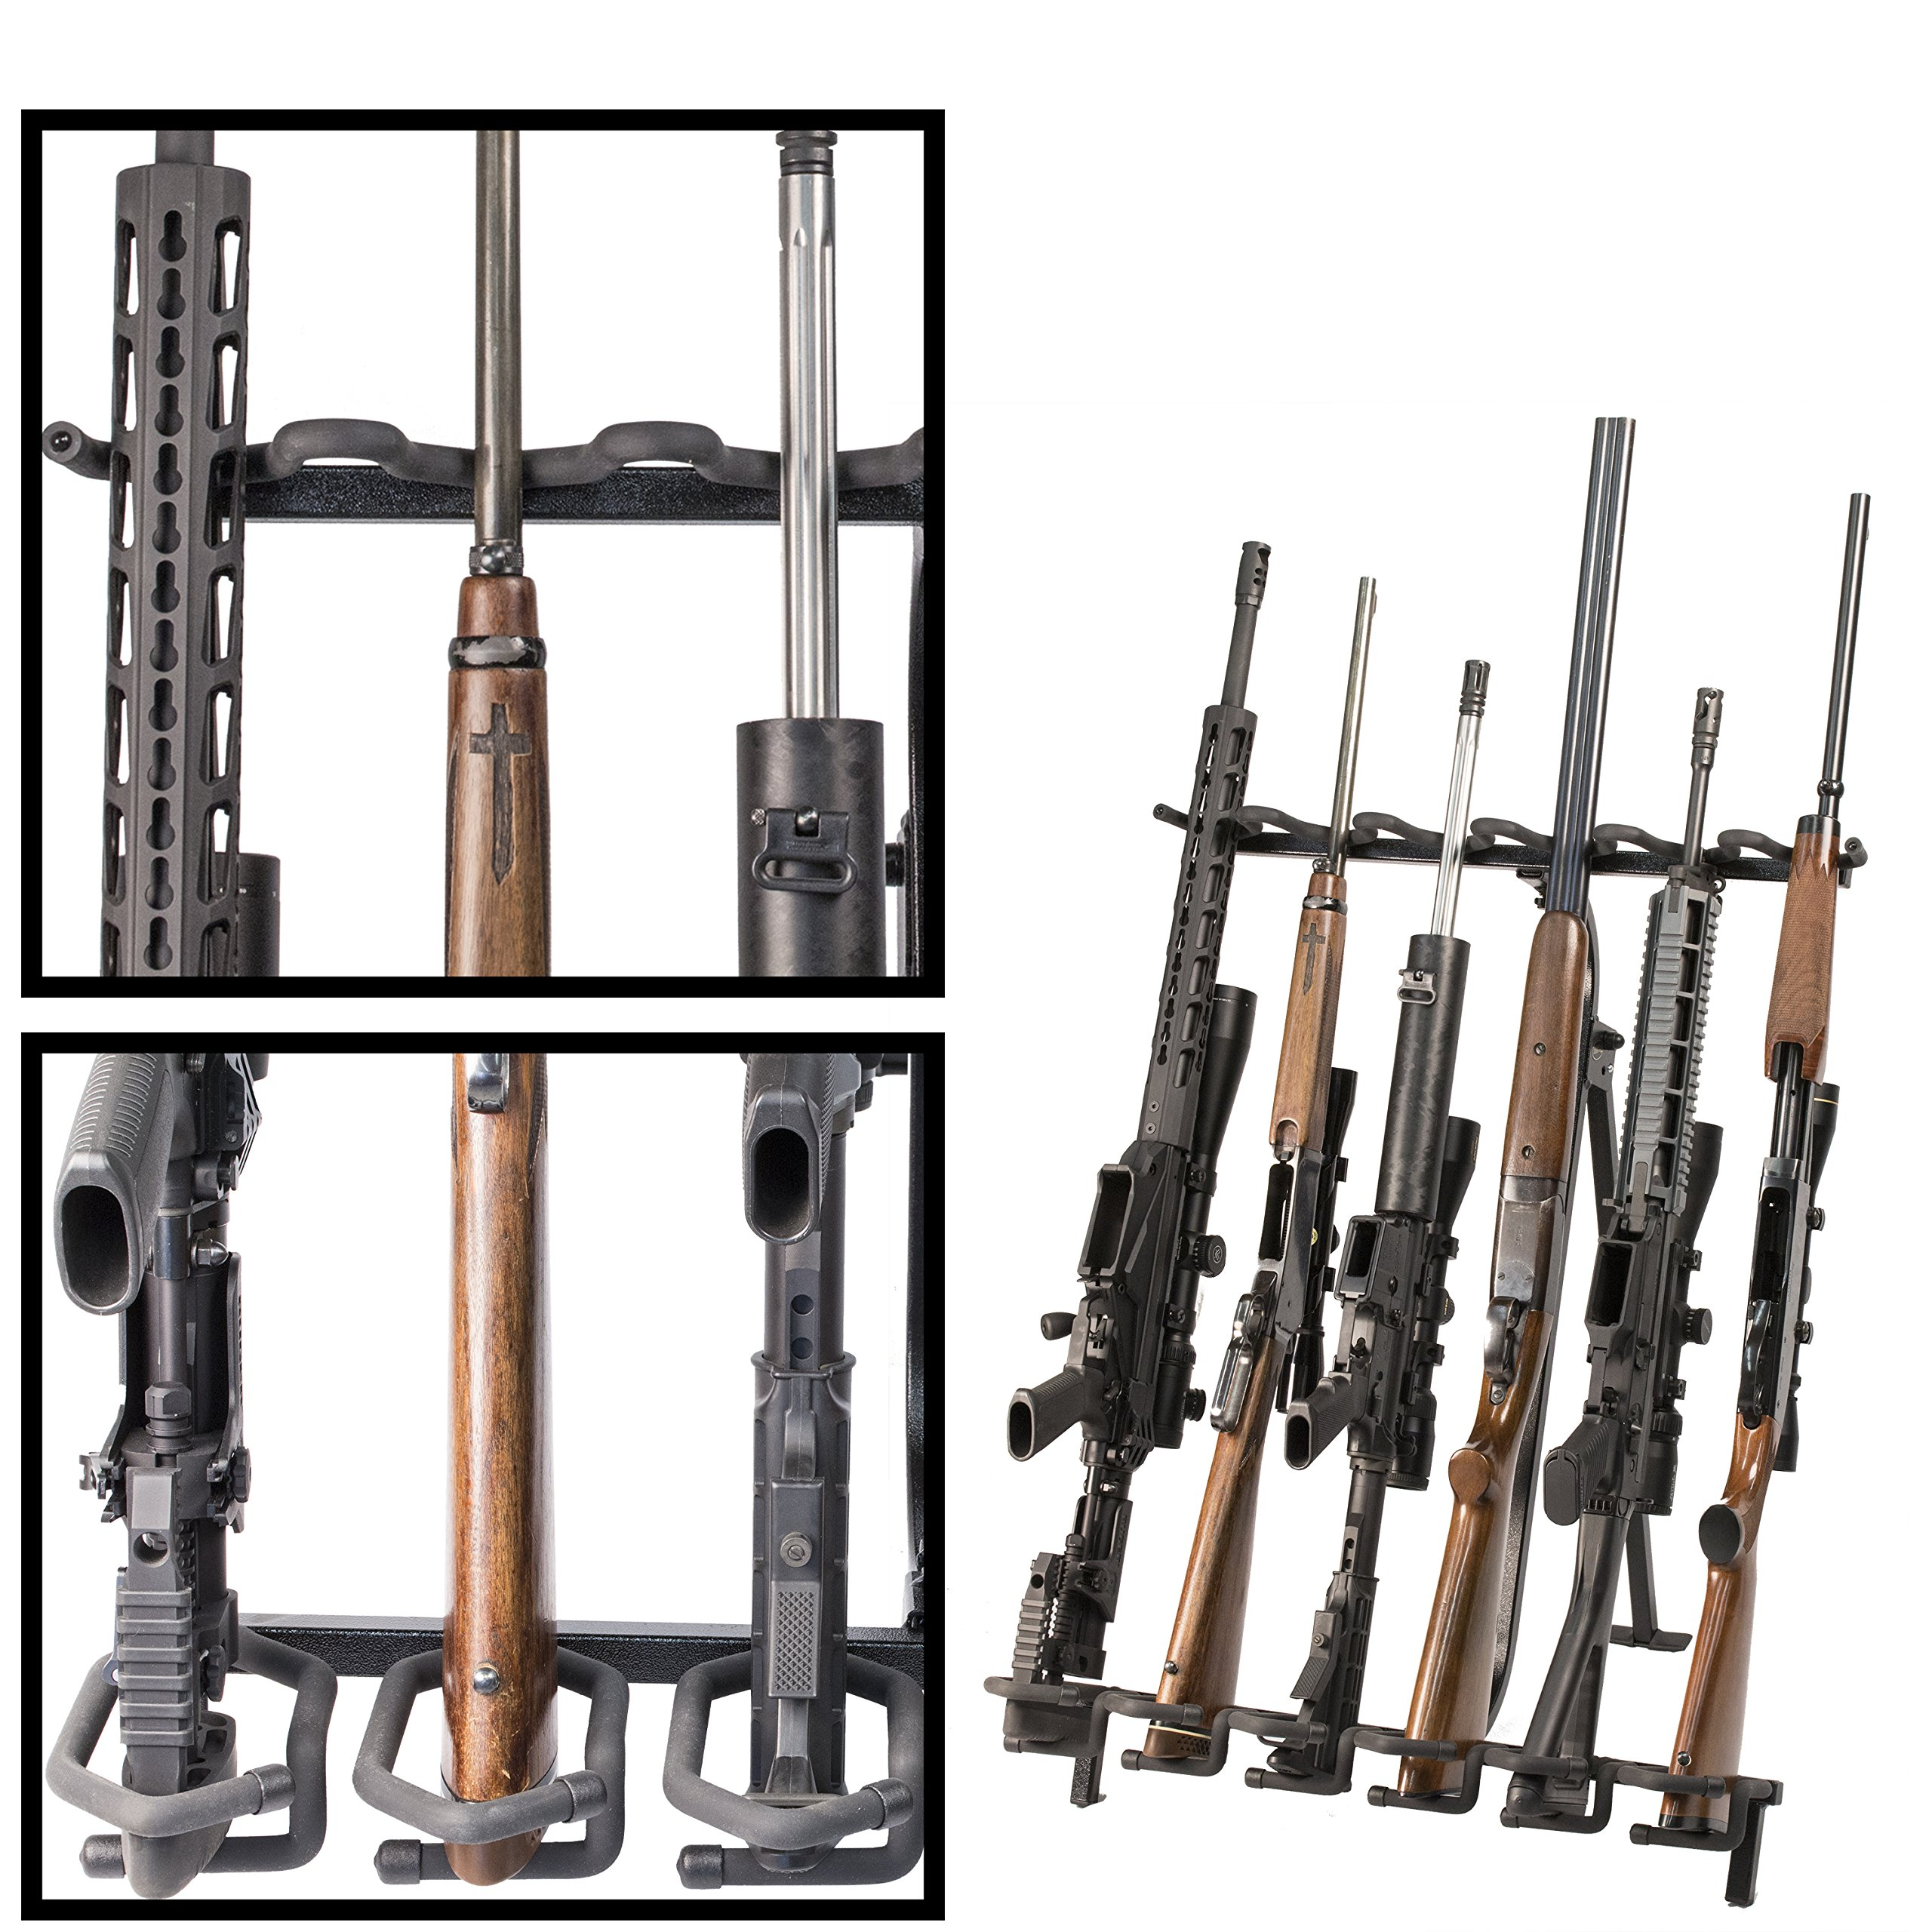 Hold Up Displays Portable Gun Rack and Bow Holder - Tactical Freestanding Folding Firearm Stand Holds Any Rifle or Bow - Keeps Guns Organized at The Shooting Range - Made in USA with Heavy Duty Steel by Hold Up Displays (Image #4)